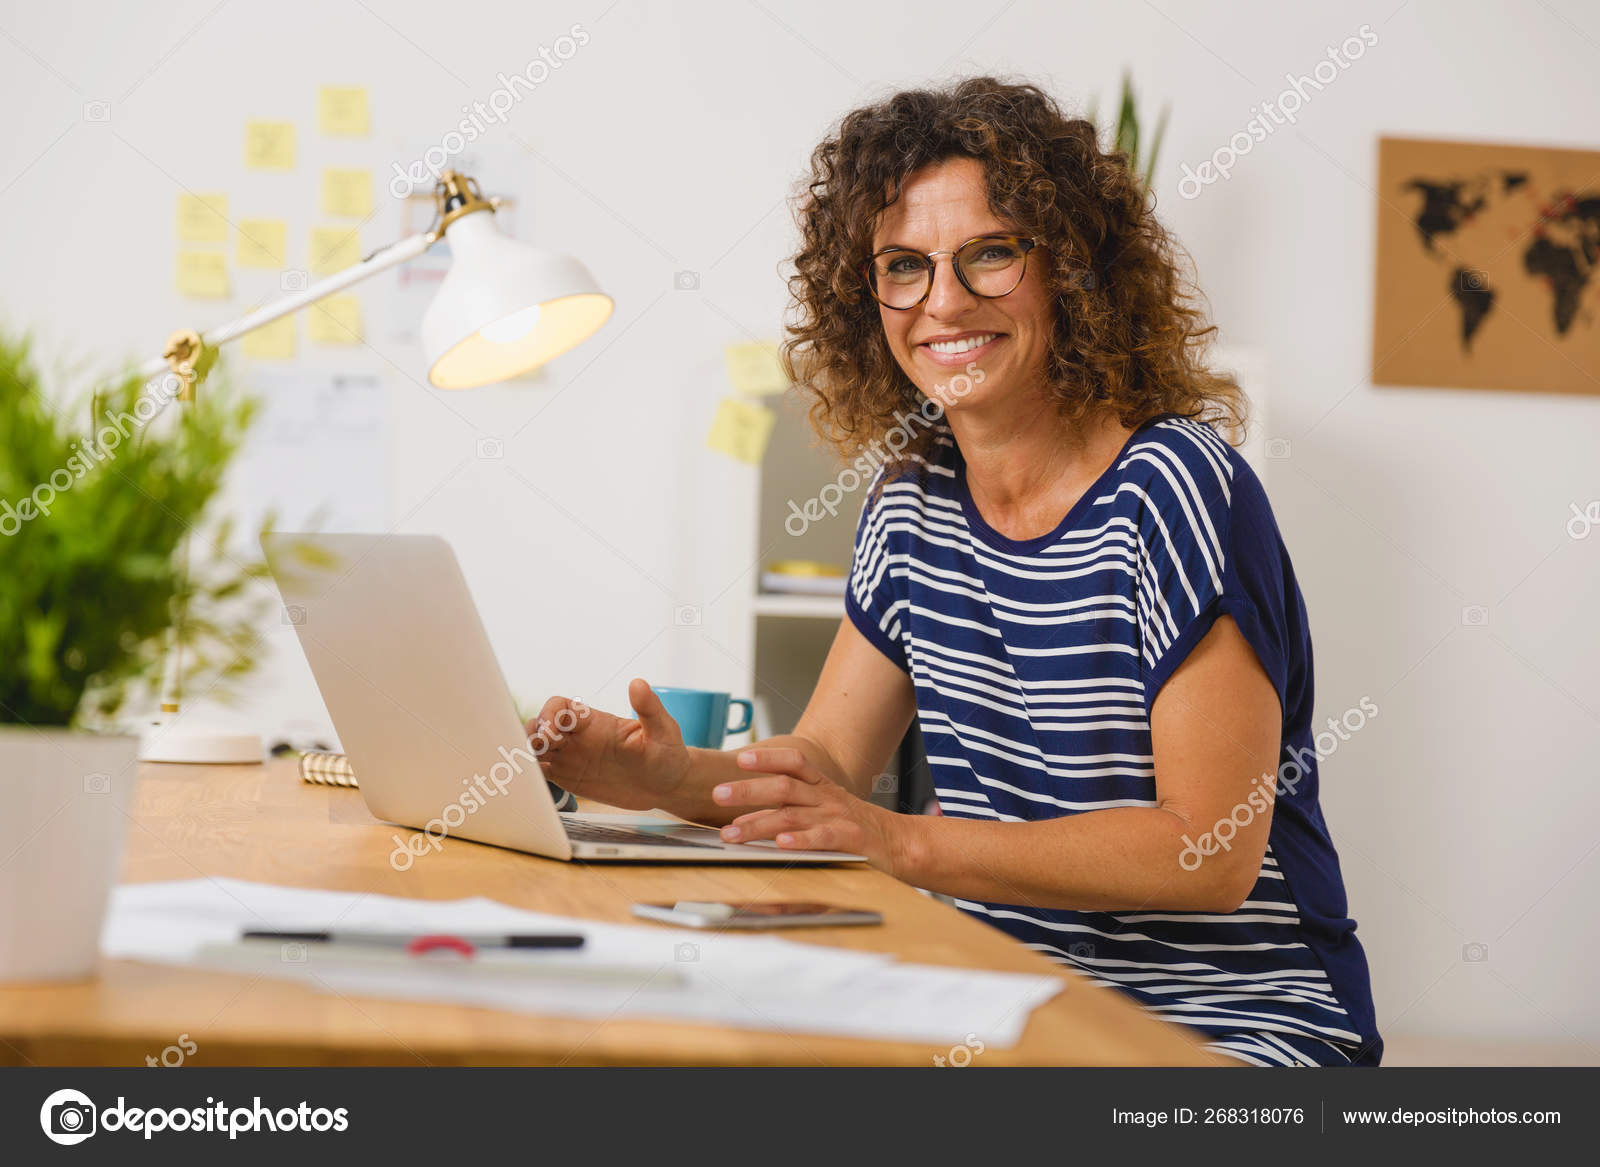 Middle Age Woman Office Working Laptop — Stock Photo © ikostudio #268318076